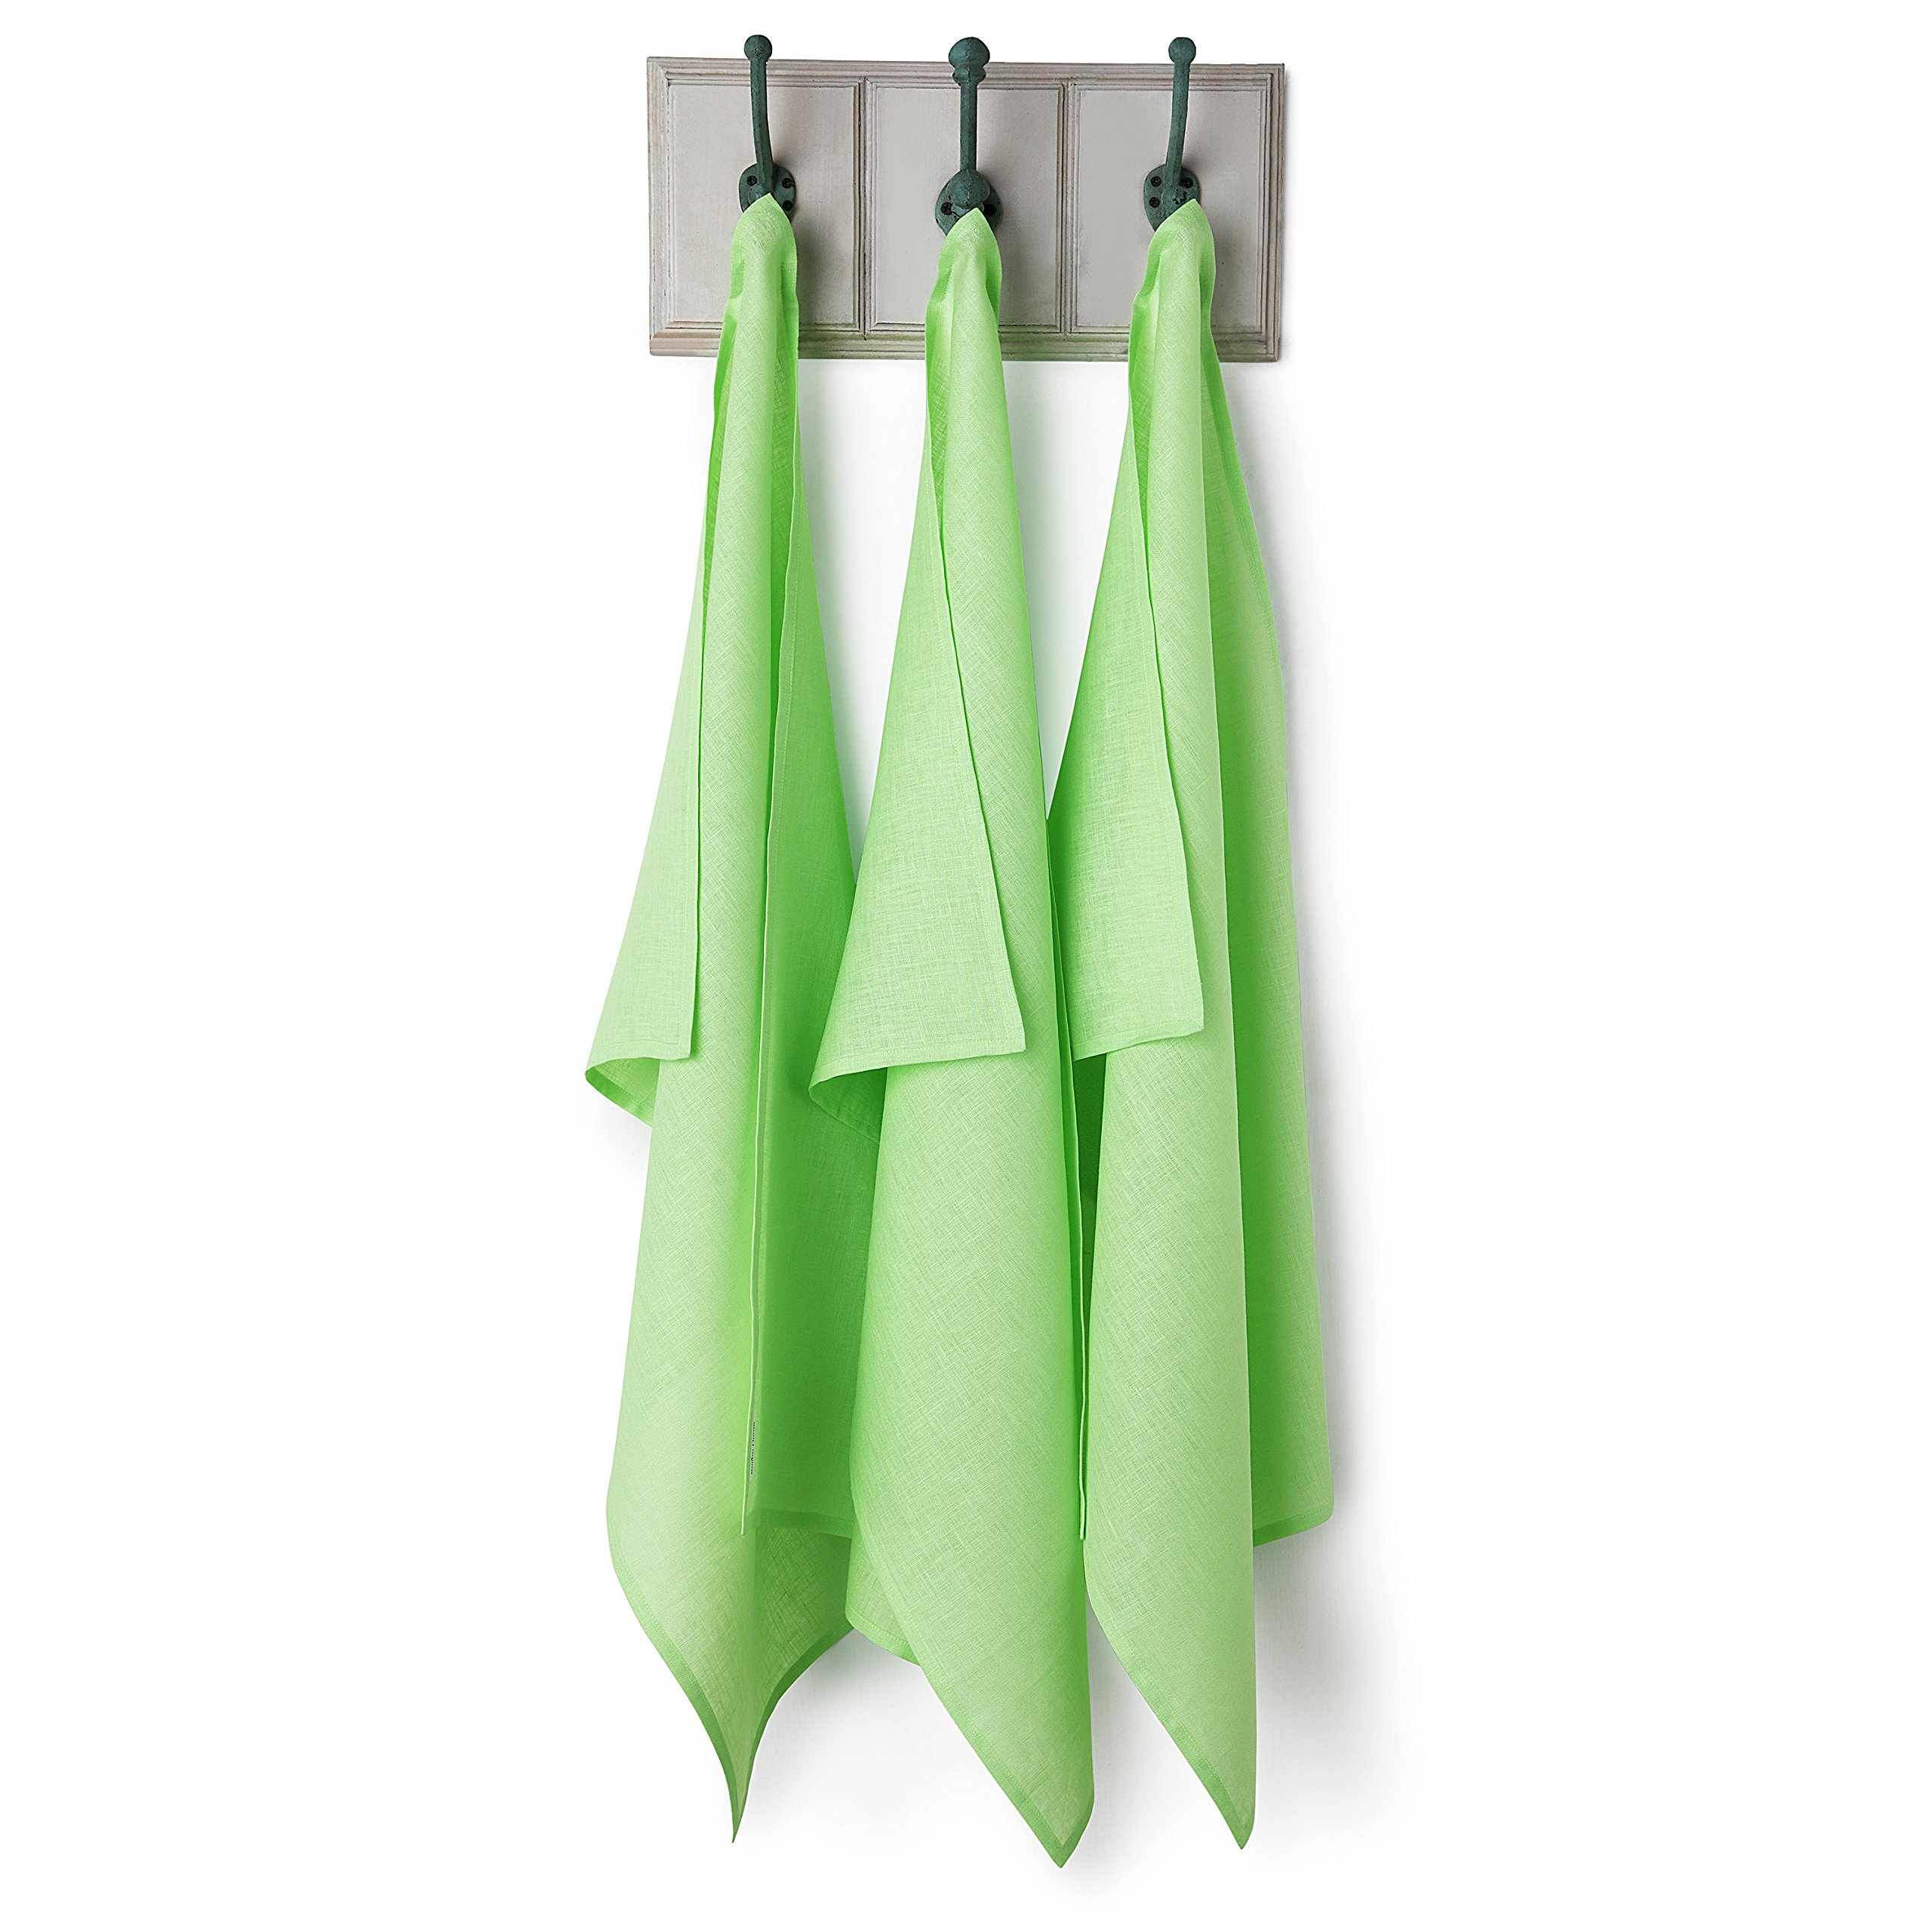 Solino Home Linen Kitchen Towels - 3 Pack 20 x 30 Inch Pure Linen Dish Towel - 100% European Flax Towel with Loop for Hanging - Lime